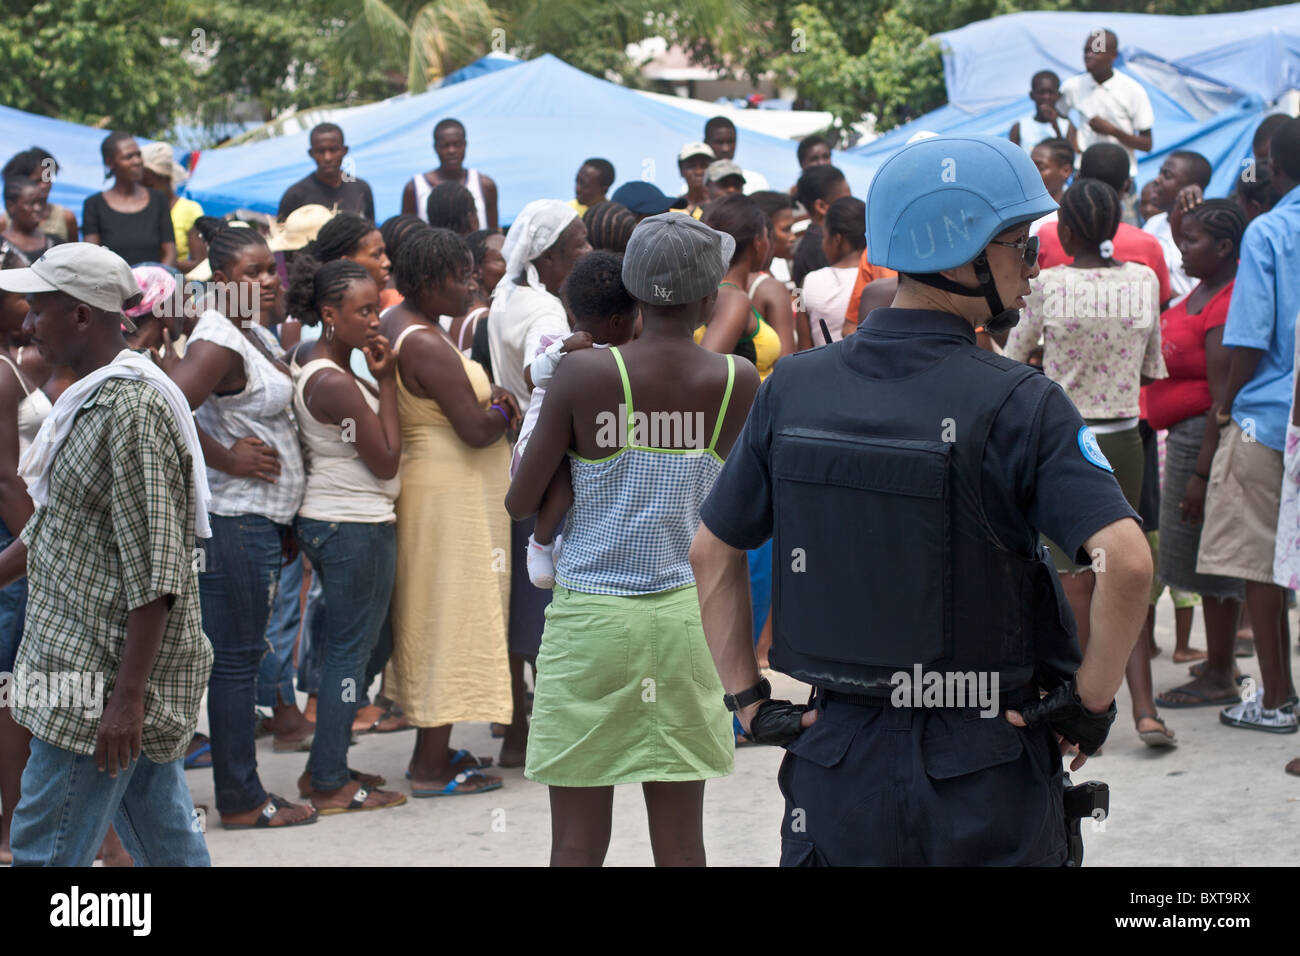 Haitians queue up in preparation for a massive food distribution to 300,000 people after their city was leveled - Stock Image